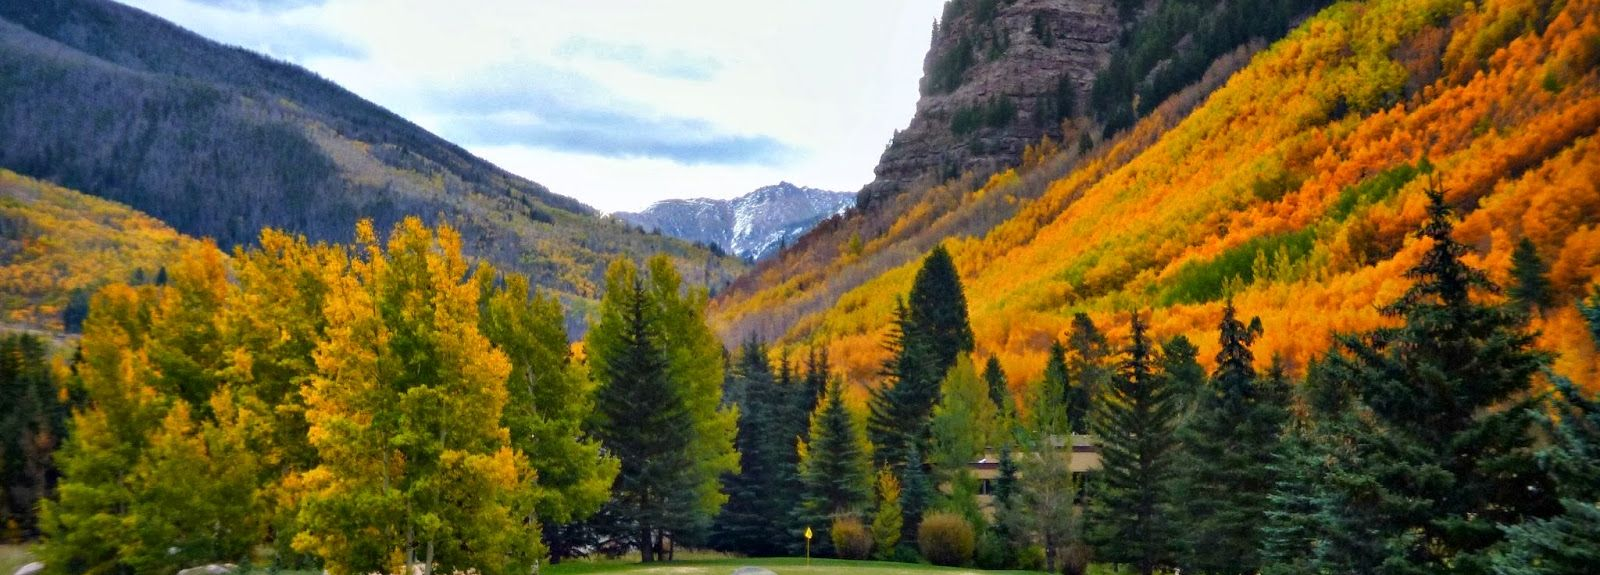 The Wren, Vail, Colorado, United States of America